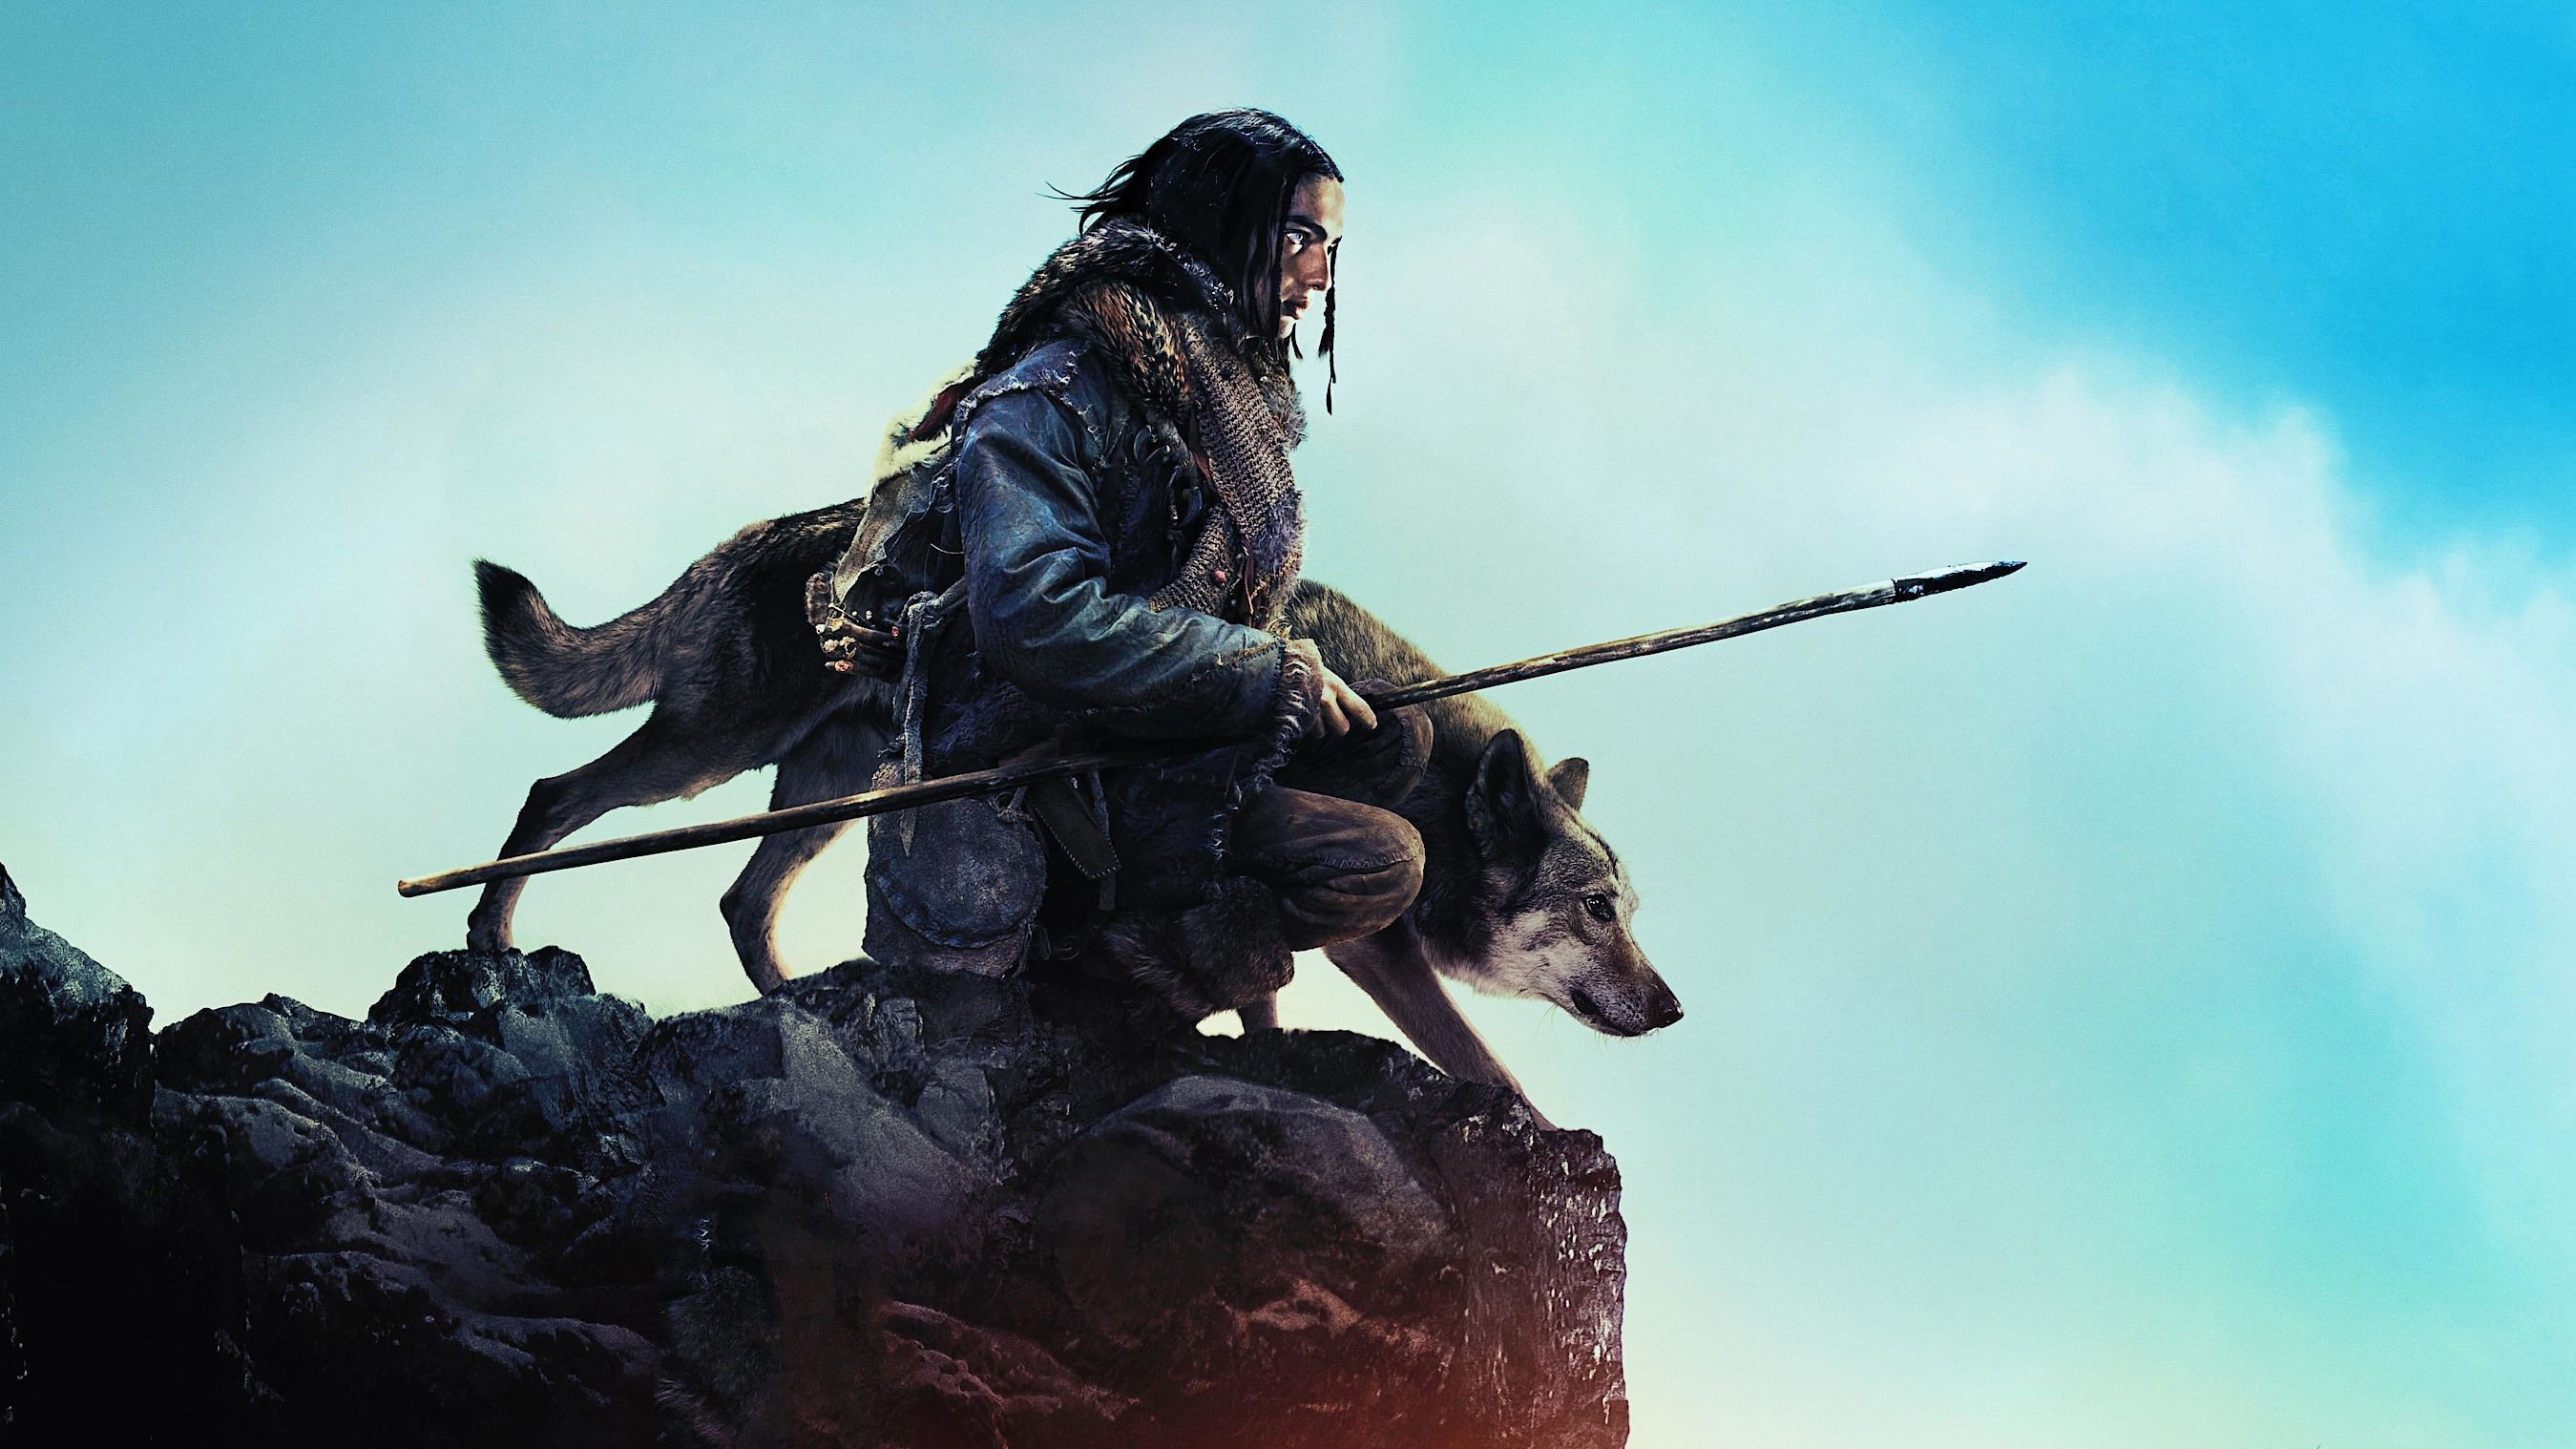 Alpha Movie Poster Hd Movies 4k Wallpapers Images